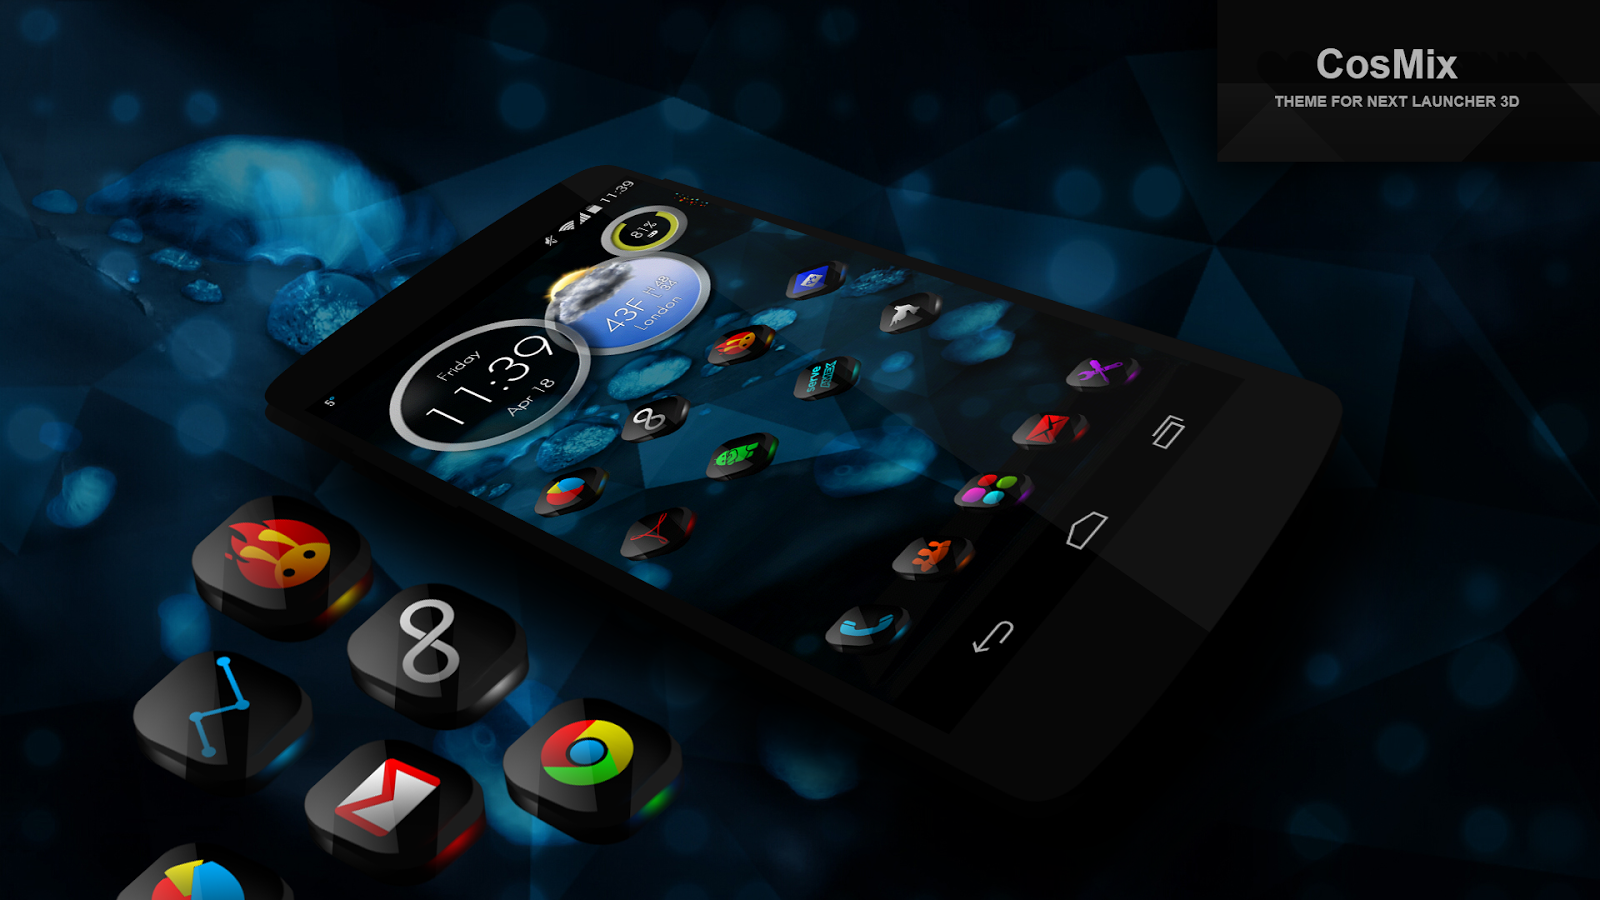 next launcher theme cosmix 3d android apps on google play. Black Bedroom Furniture Sets. Home Design Ideas